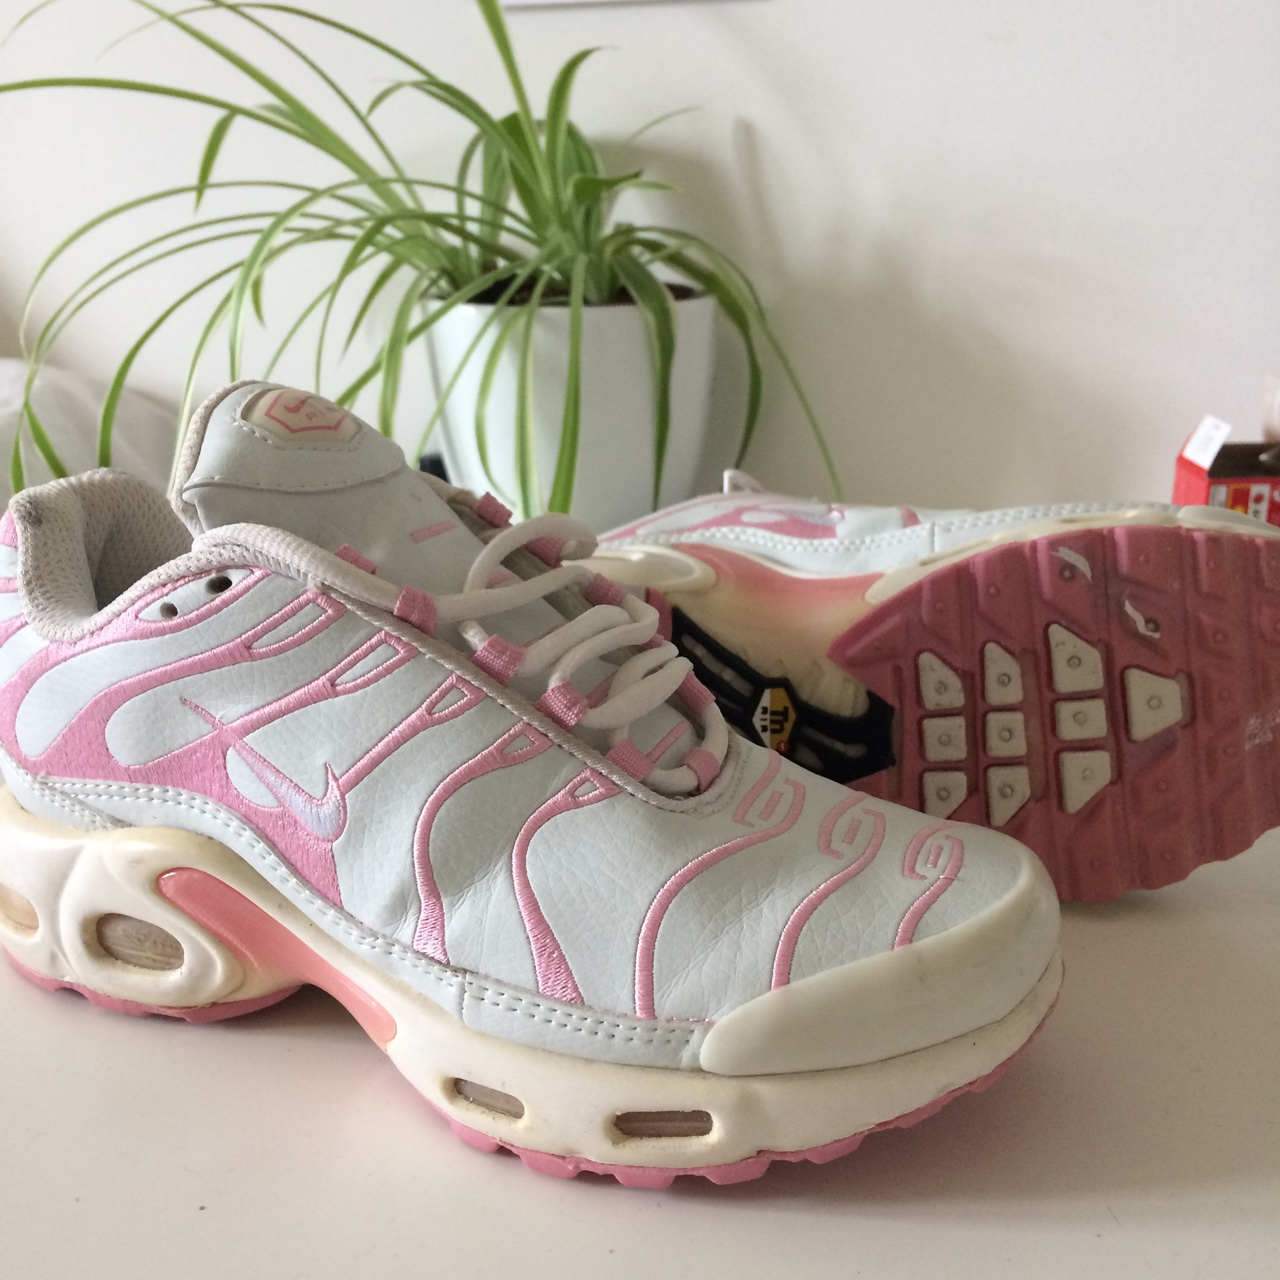 competitive price a7d13 51f51 Y2k Baby pink & white Nike Tns trainers w/... - Depop